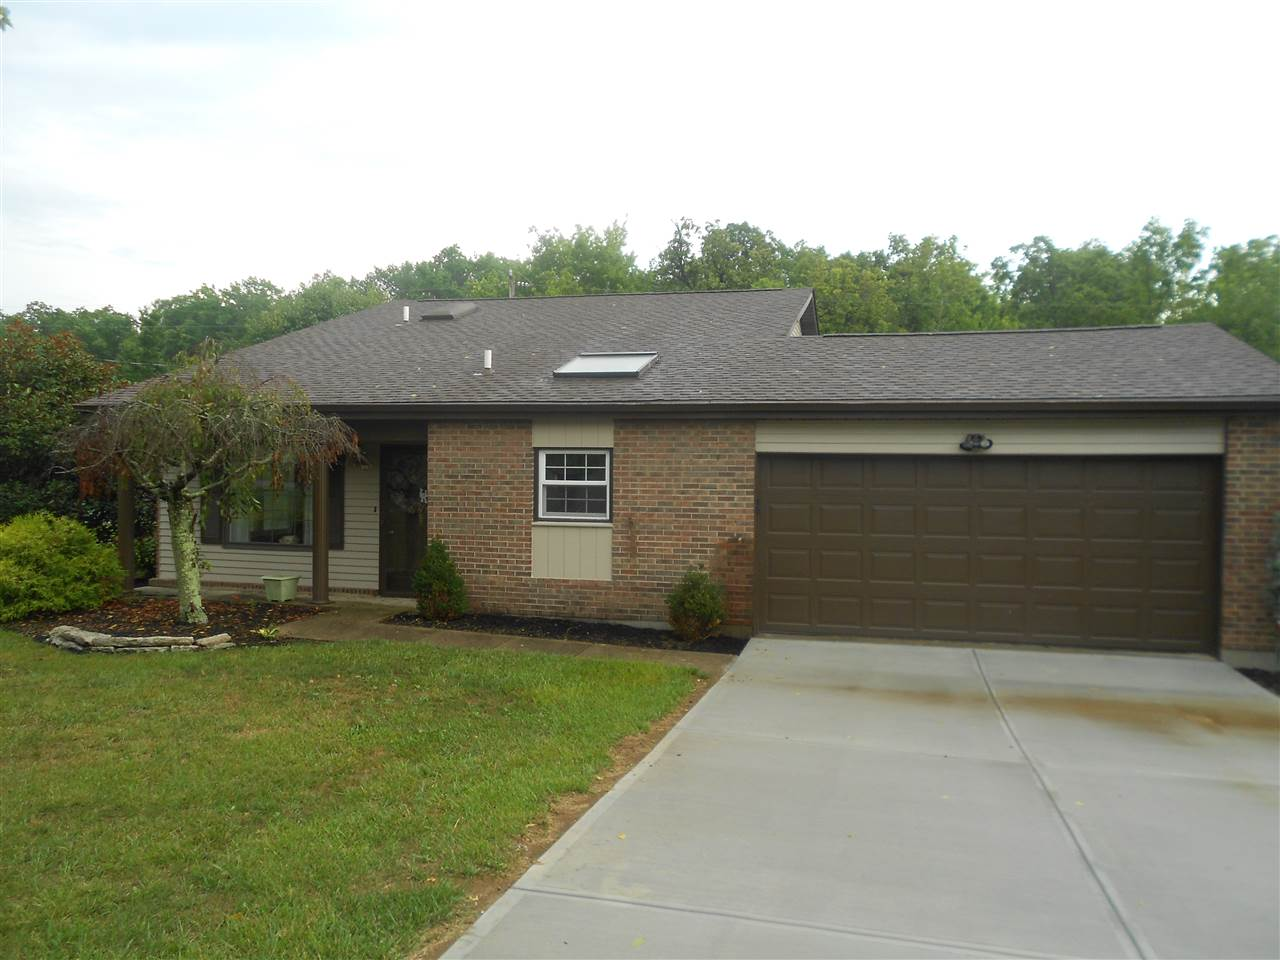 Photo 1 for 3133 Allens Fork Dr Burlington, KY 41005